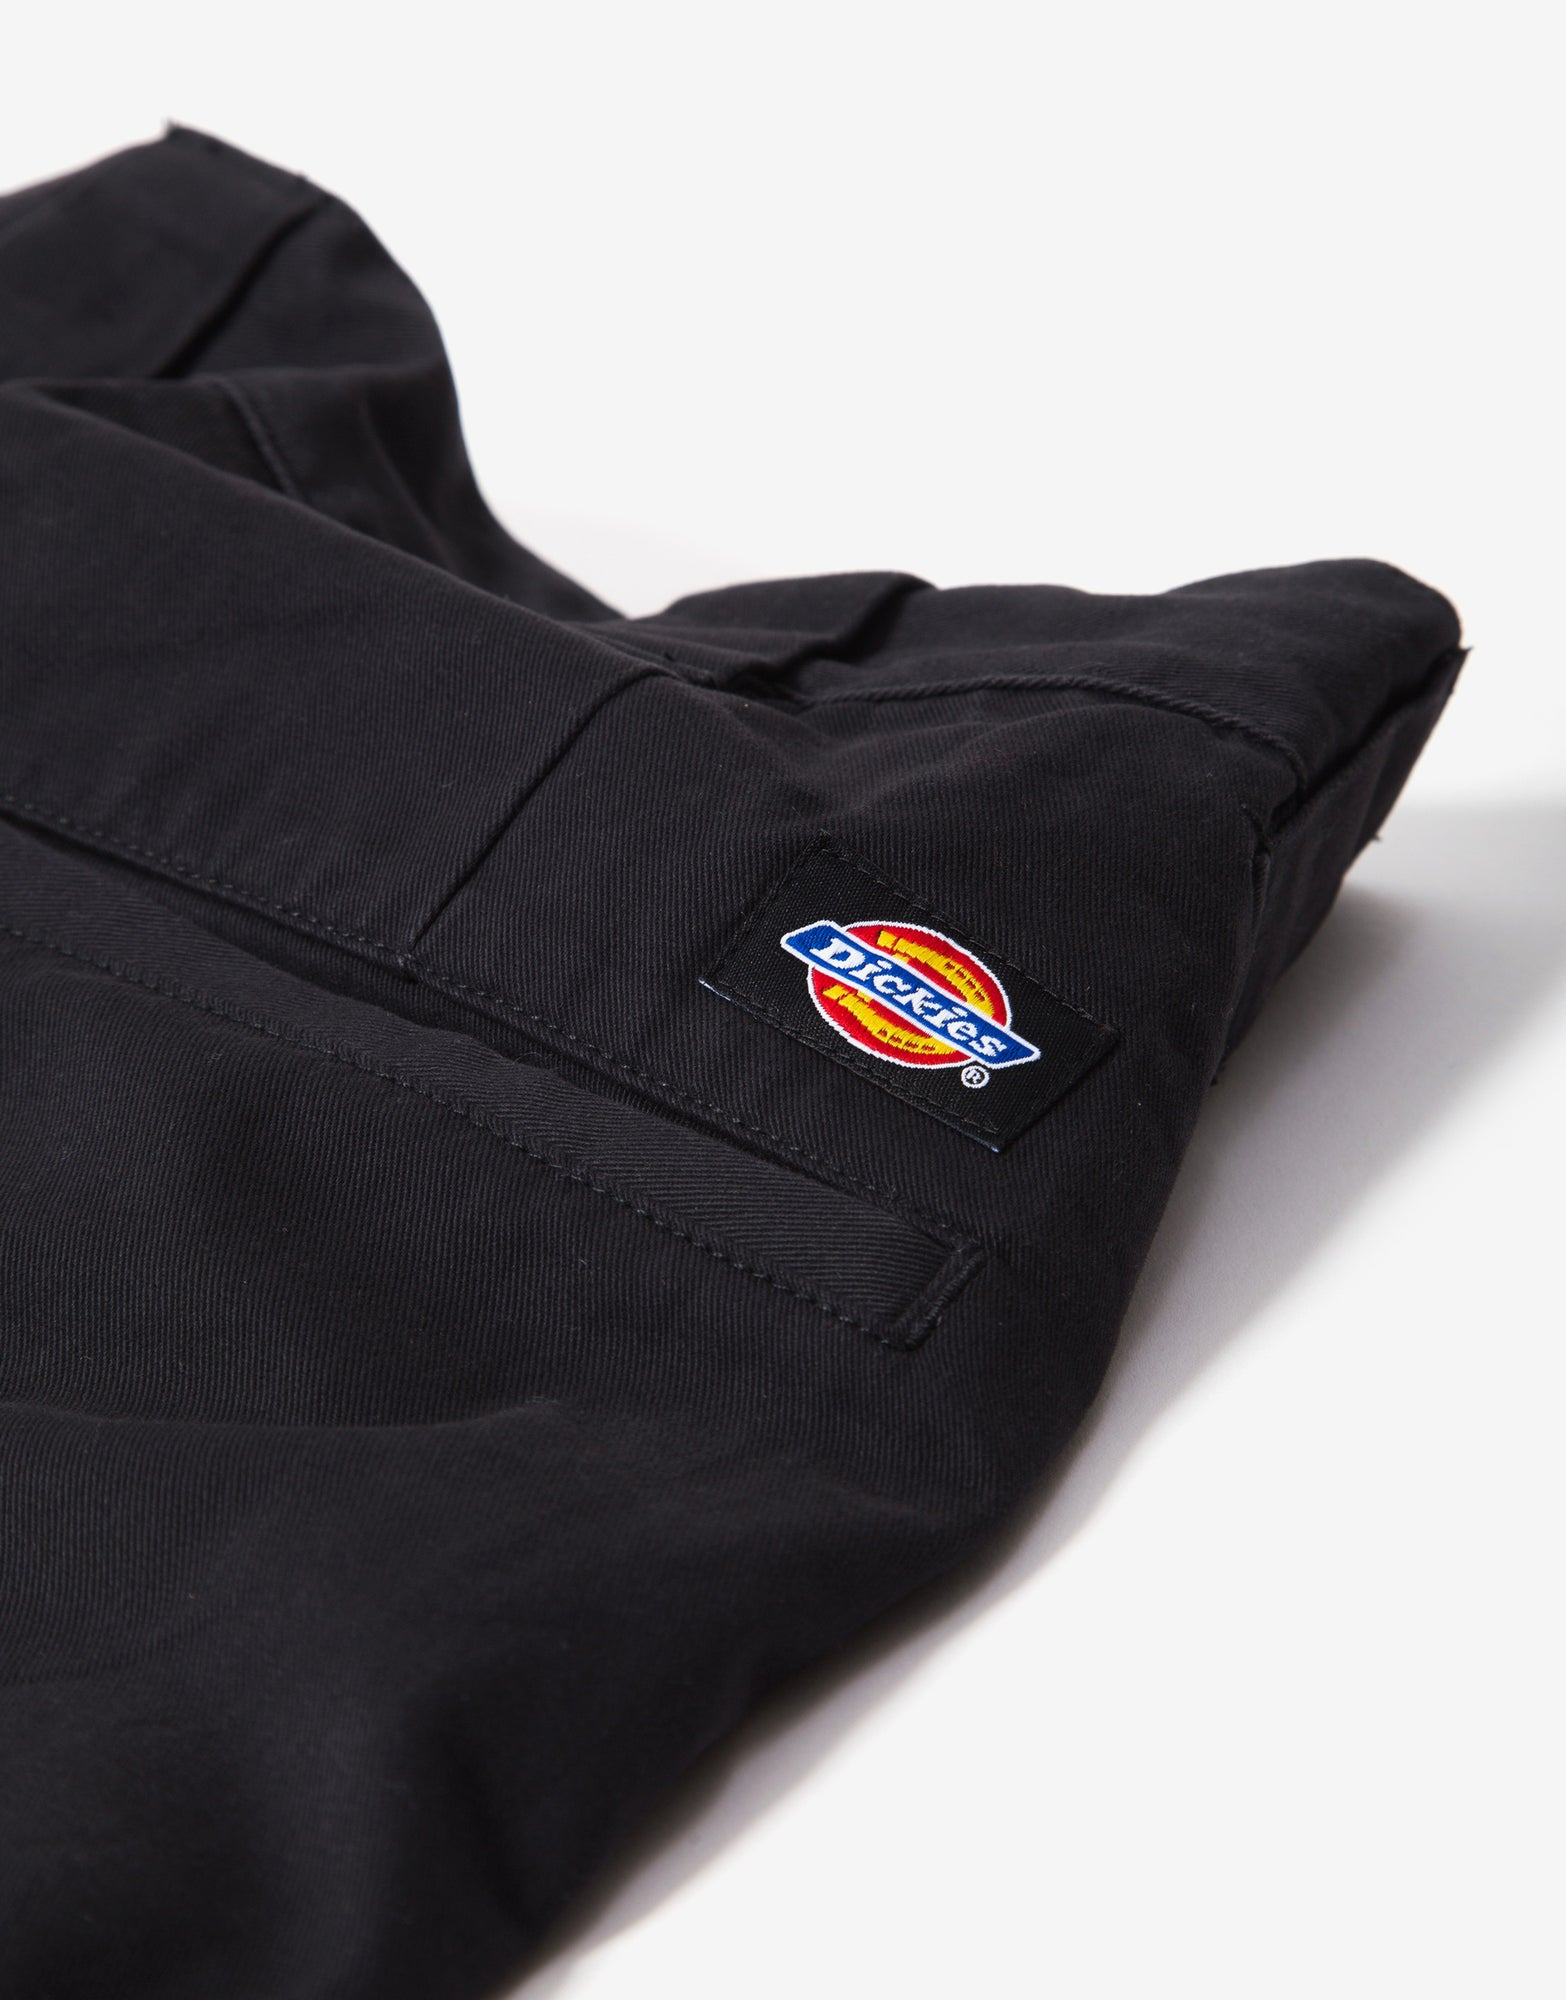 Dickies Vancleve Slim Fit Pants - Black